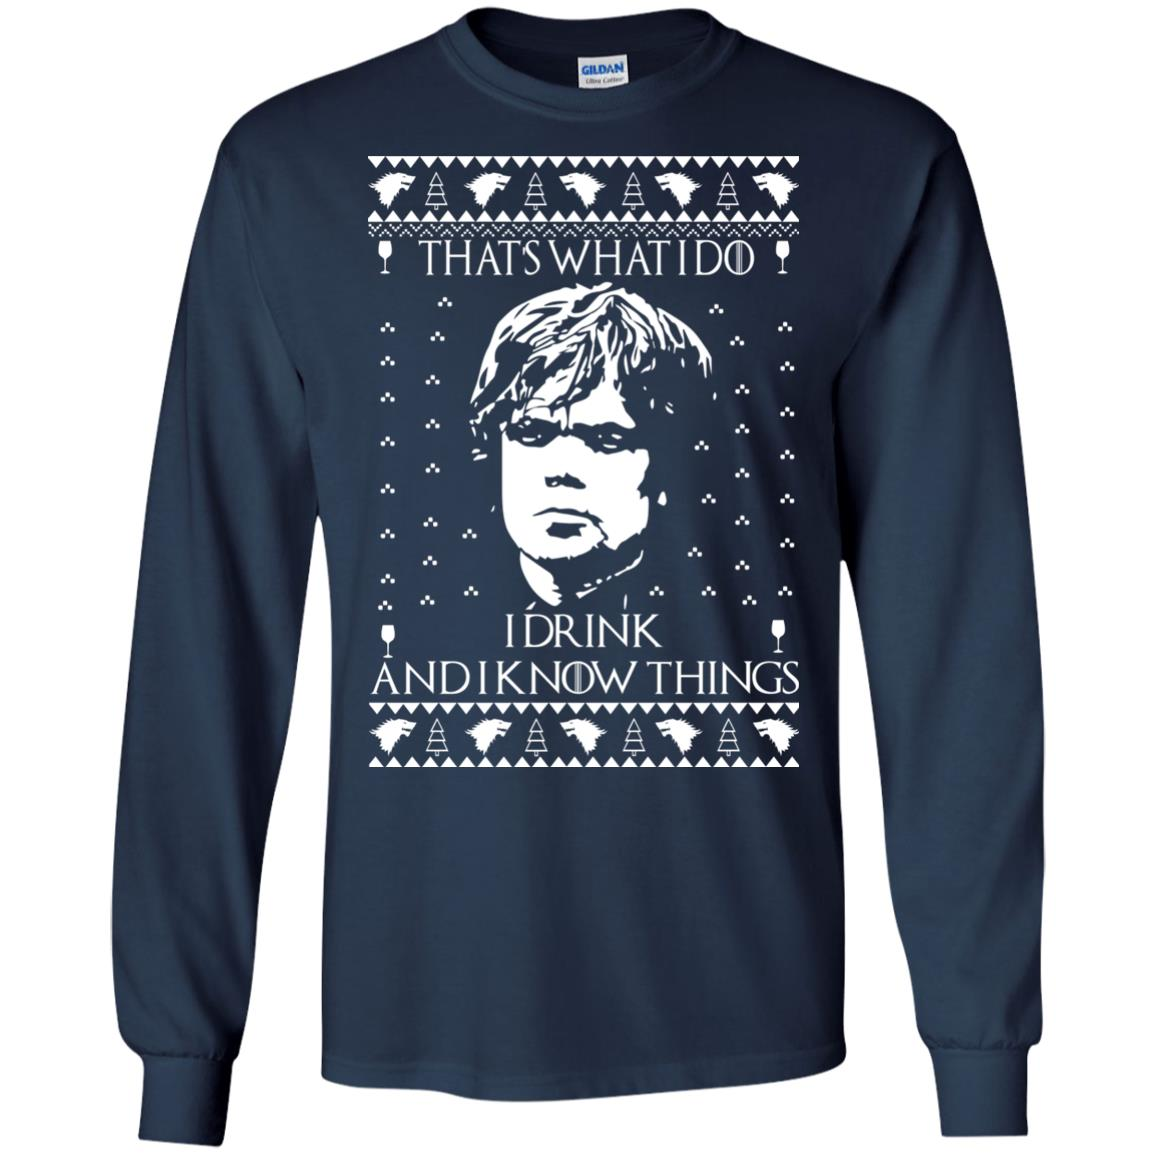 image 3002 - Tyrion Lannister I Drink and I Know Things Ugly Christmas Sweater, Shirt